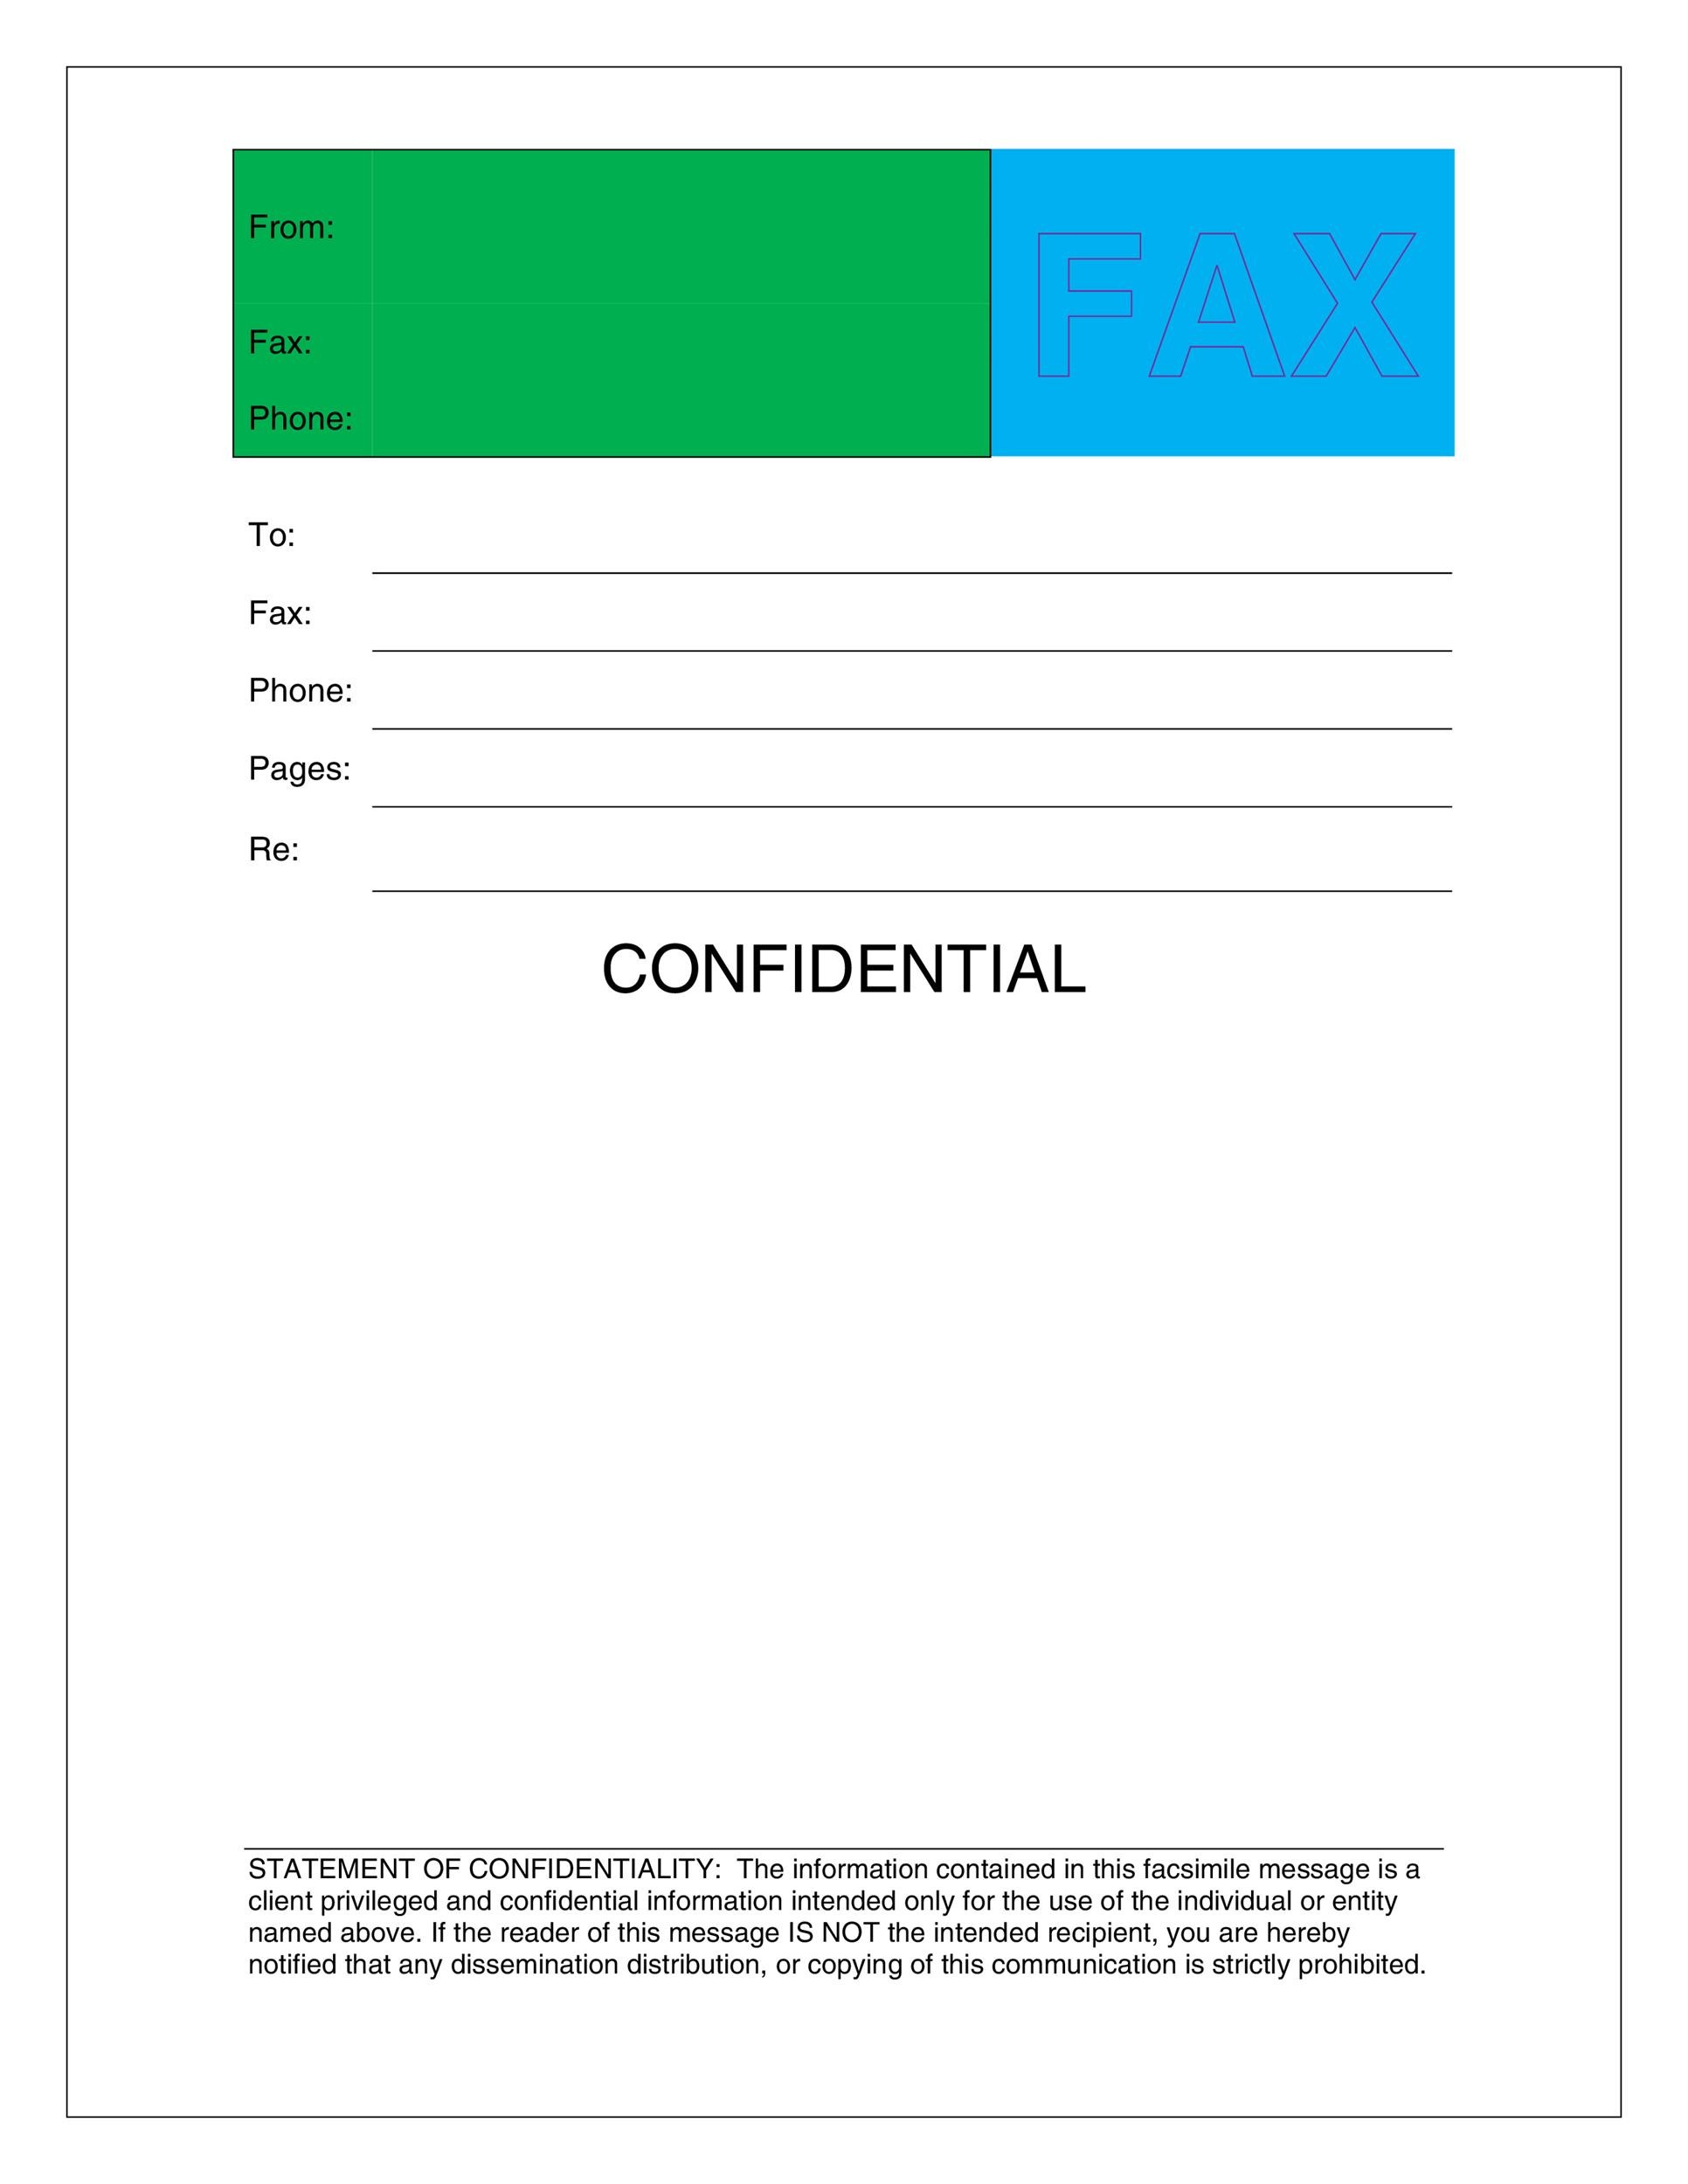 40 Printable Fax Cover Sheet Templates Template Lab – Fax Cover Sheets Templates